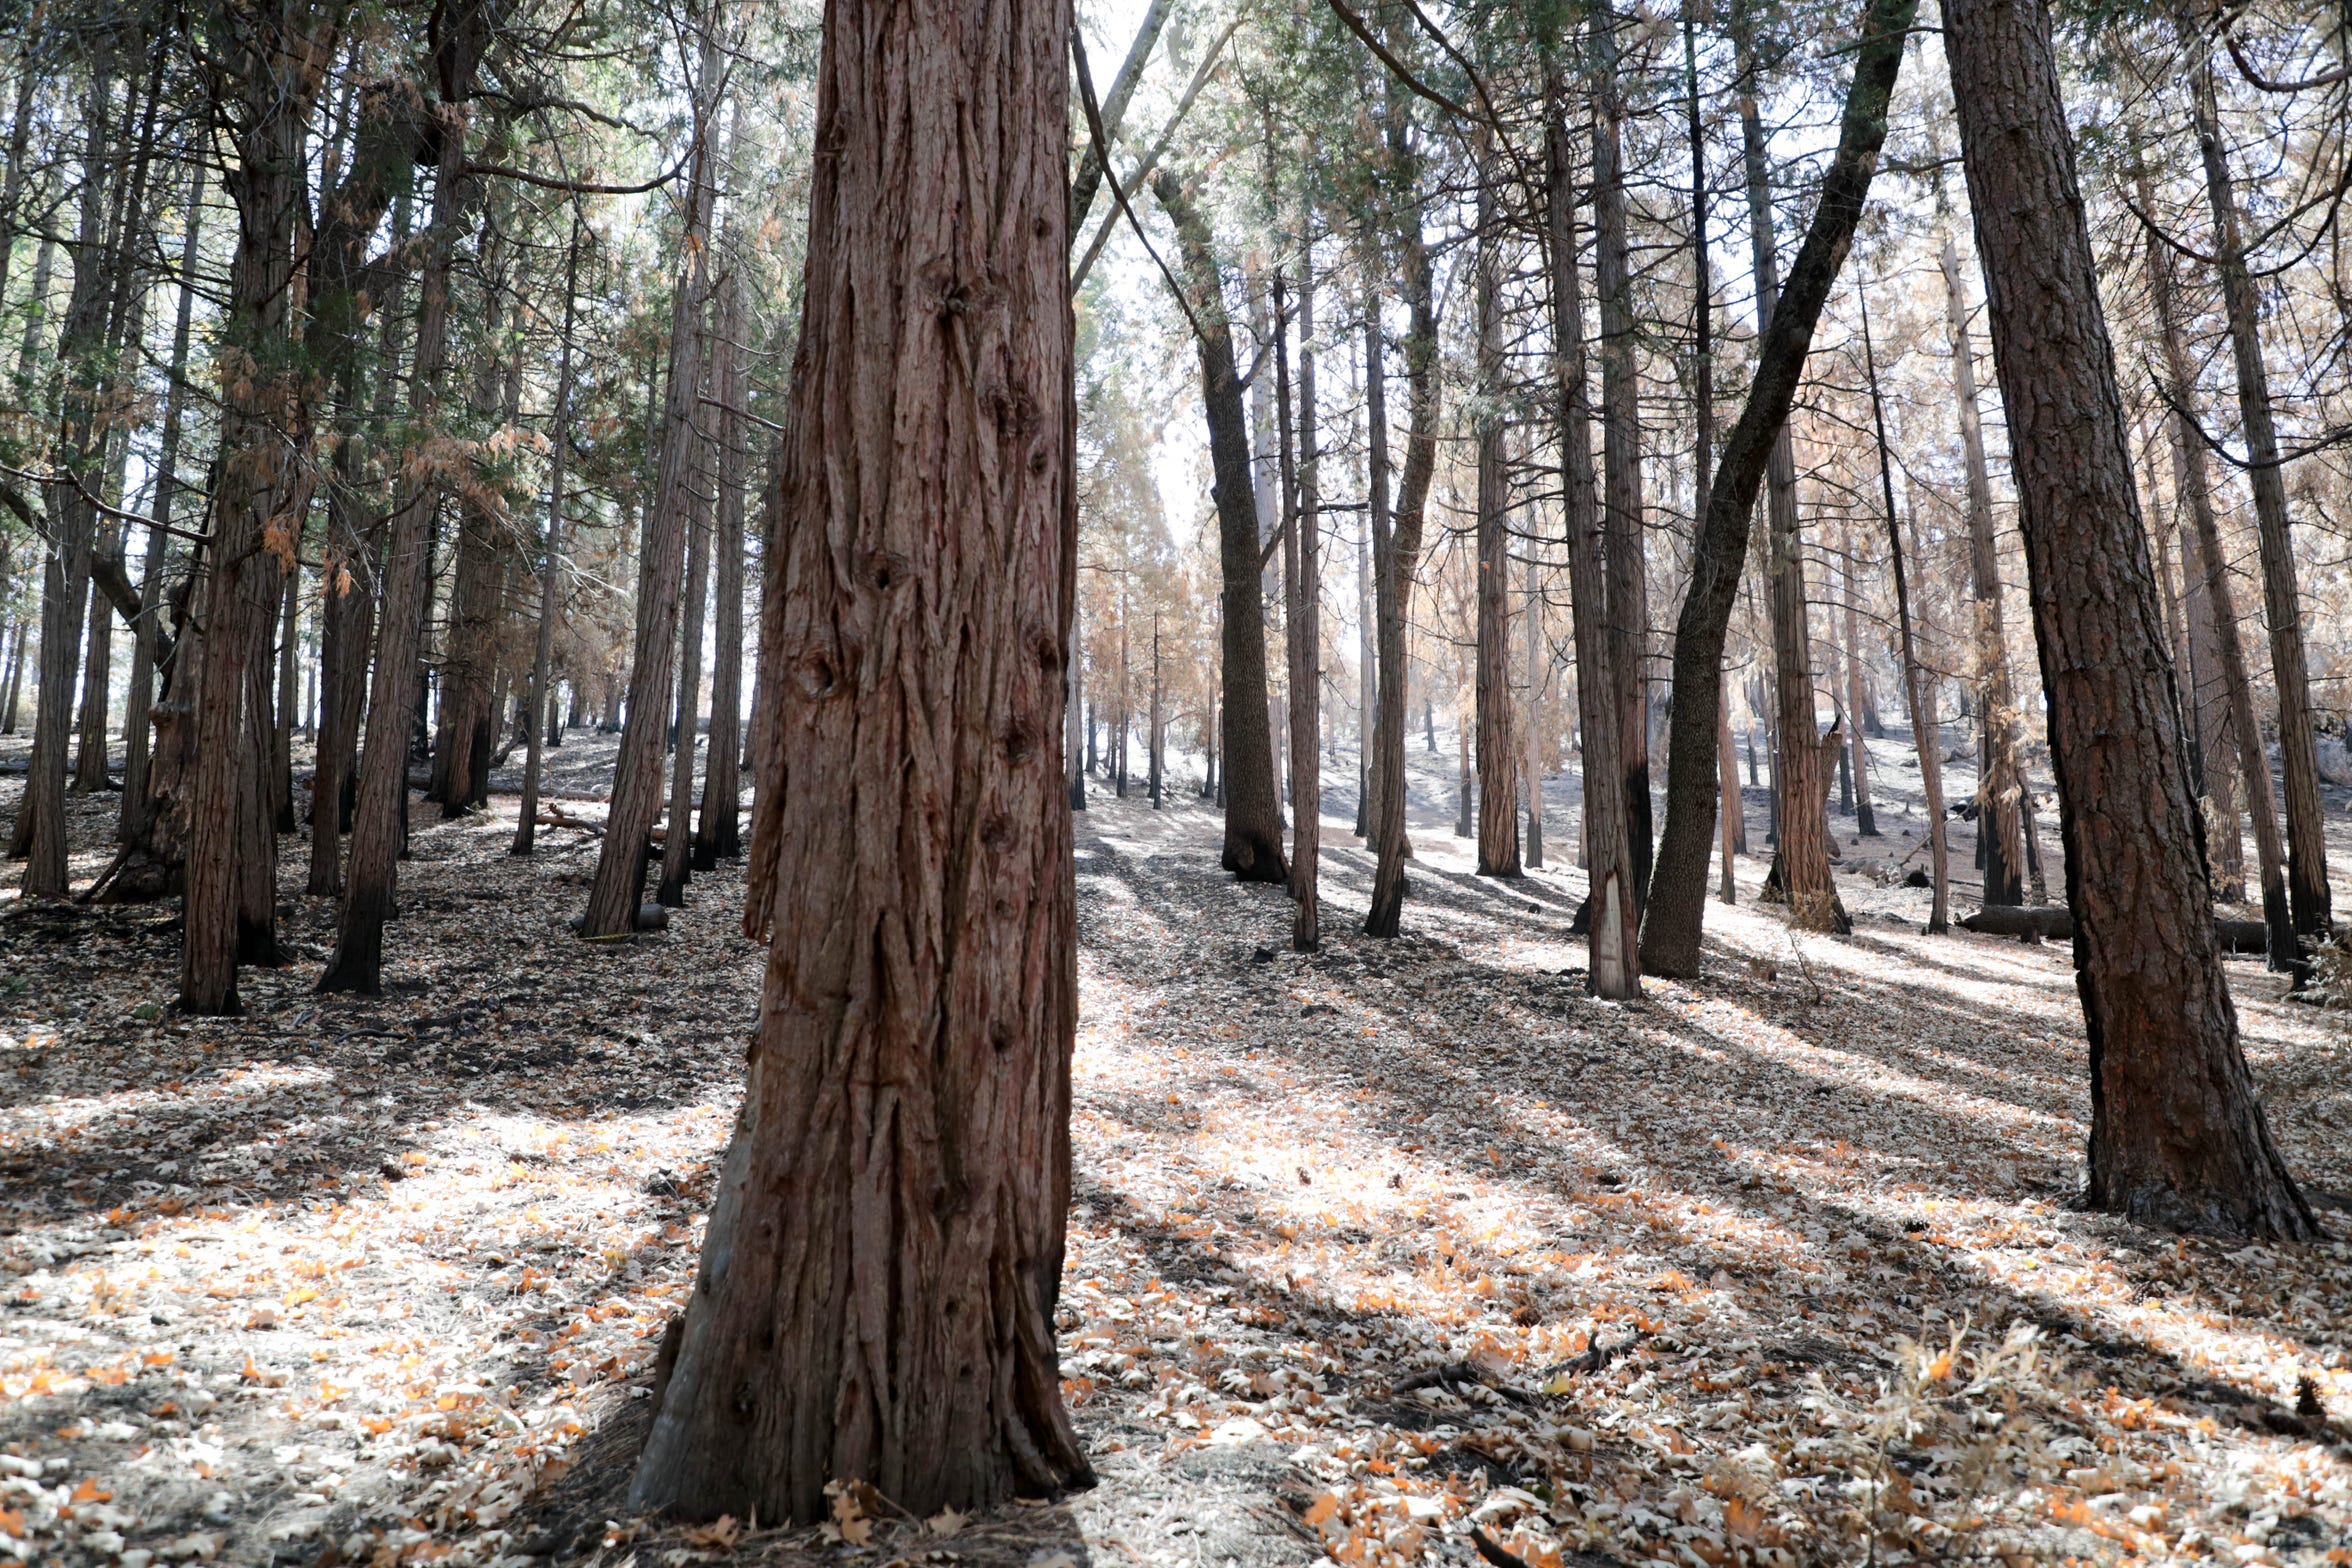 Two years before the Cranston Fire, Idyllwild Arts Foundation received grant funding to create a fuel break around the school's perimeter, and remove trees and prune shrubs across more than 80 acres (including this area). Fire officials credit the thinning, particularly fuel breaks, forslowing the progression of the fire, andsafeguarding the campus and town.